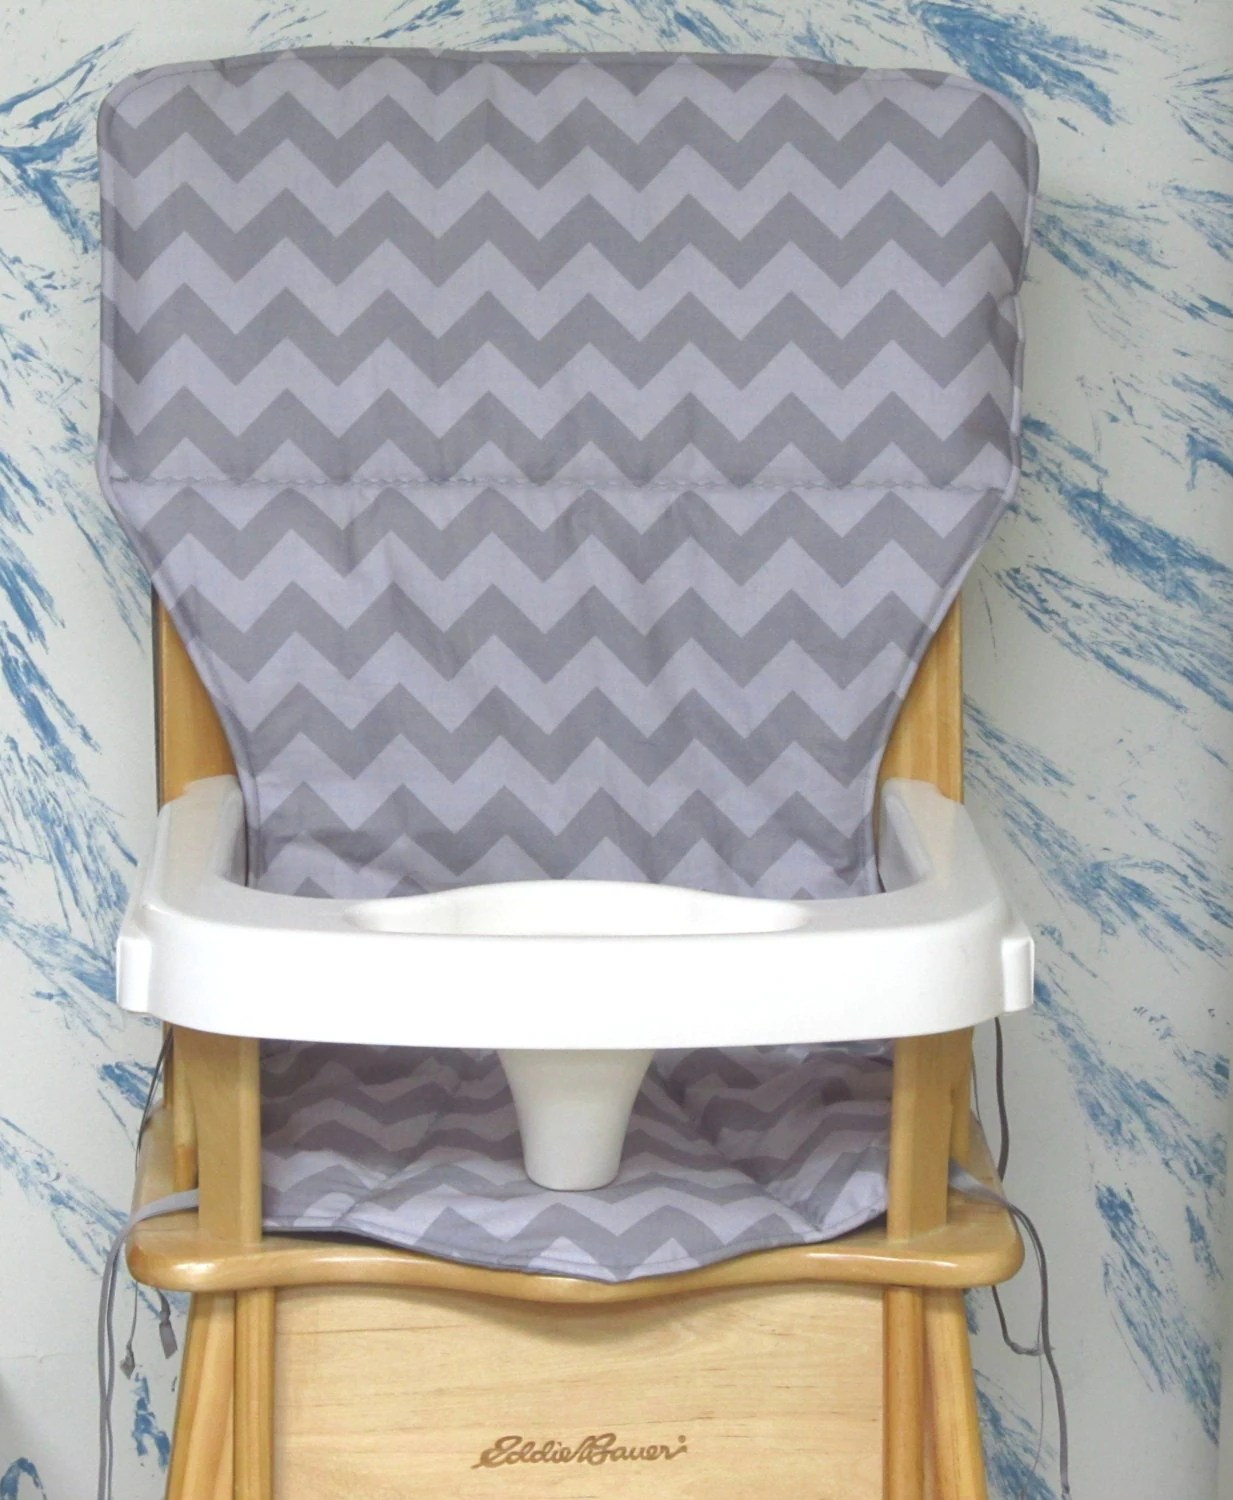 eddie bauer high chairs sunbrella lounge replacement chair coverchevronzig zag two